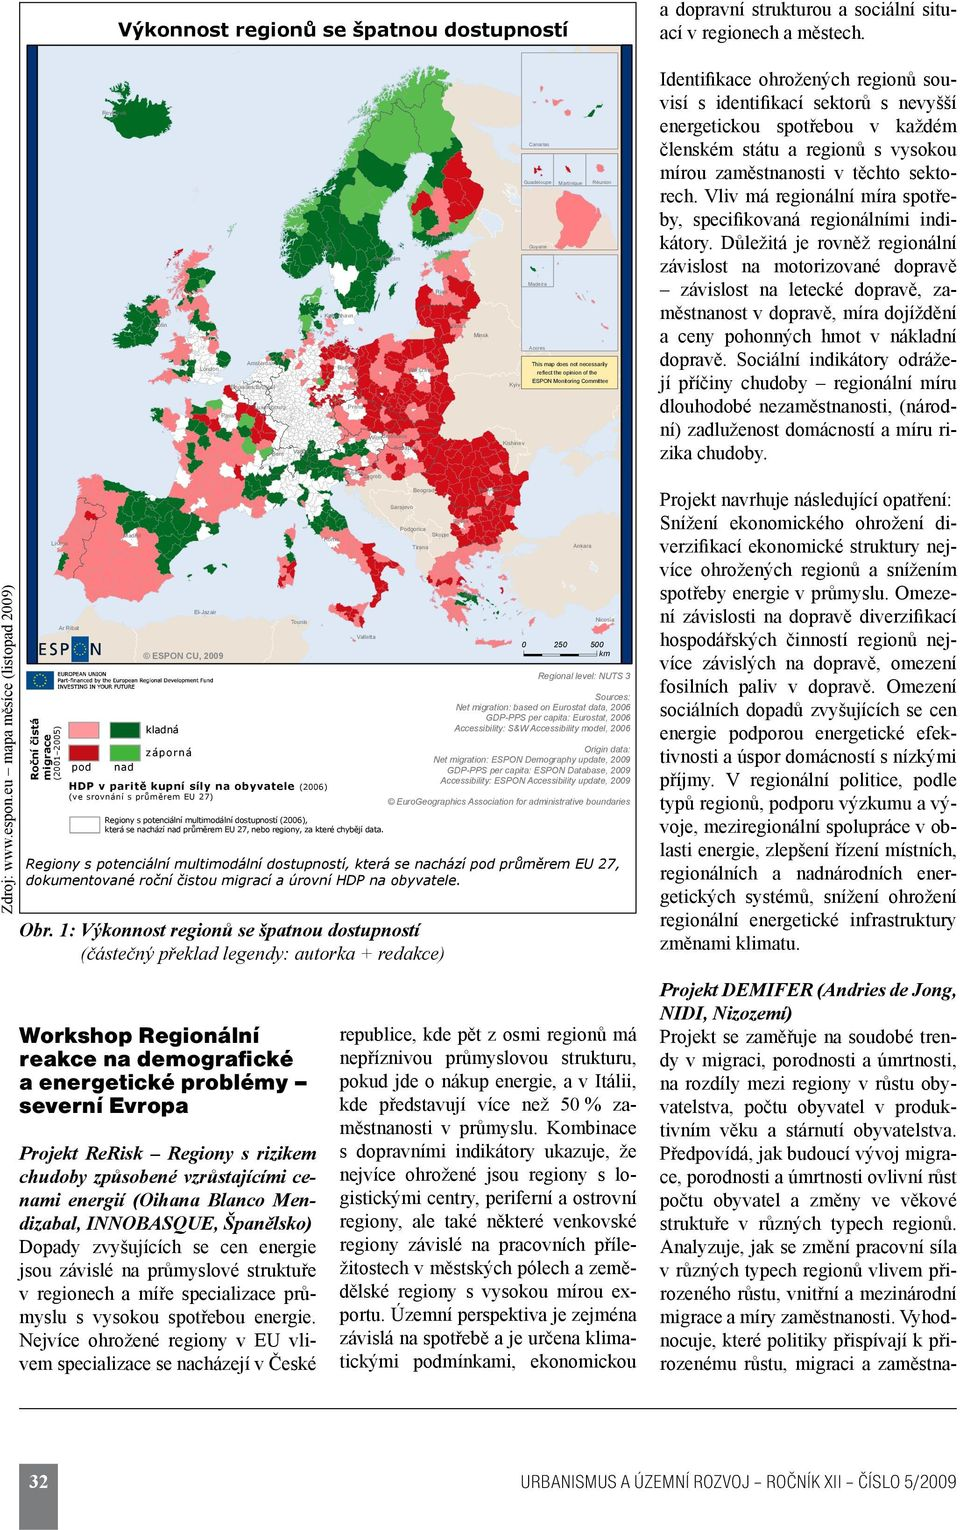 Kishinev Canarias Guadeloupe Martinique Réunion Guyane Madeira Acores This map does not necessarily reflect the opinion of the ESPON Monitoring Committee Identifikace ohrožených regionů souvisí s